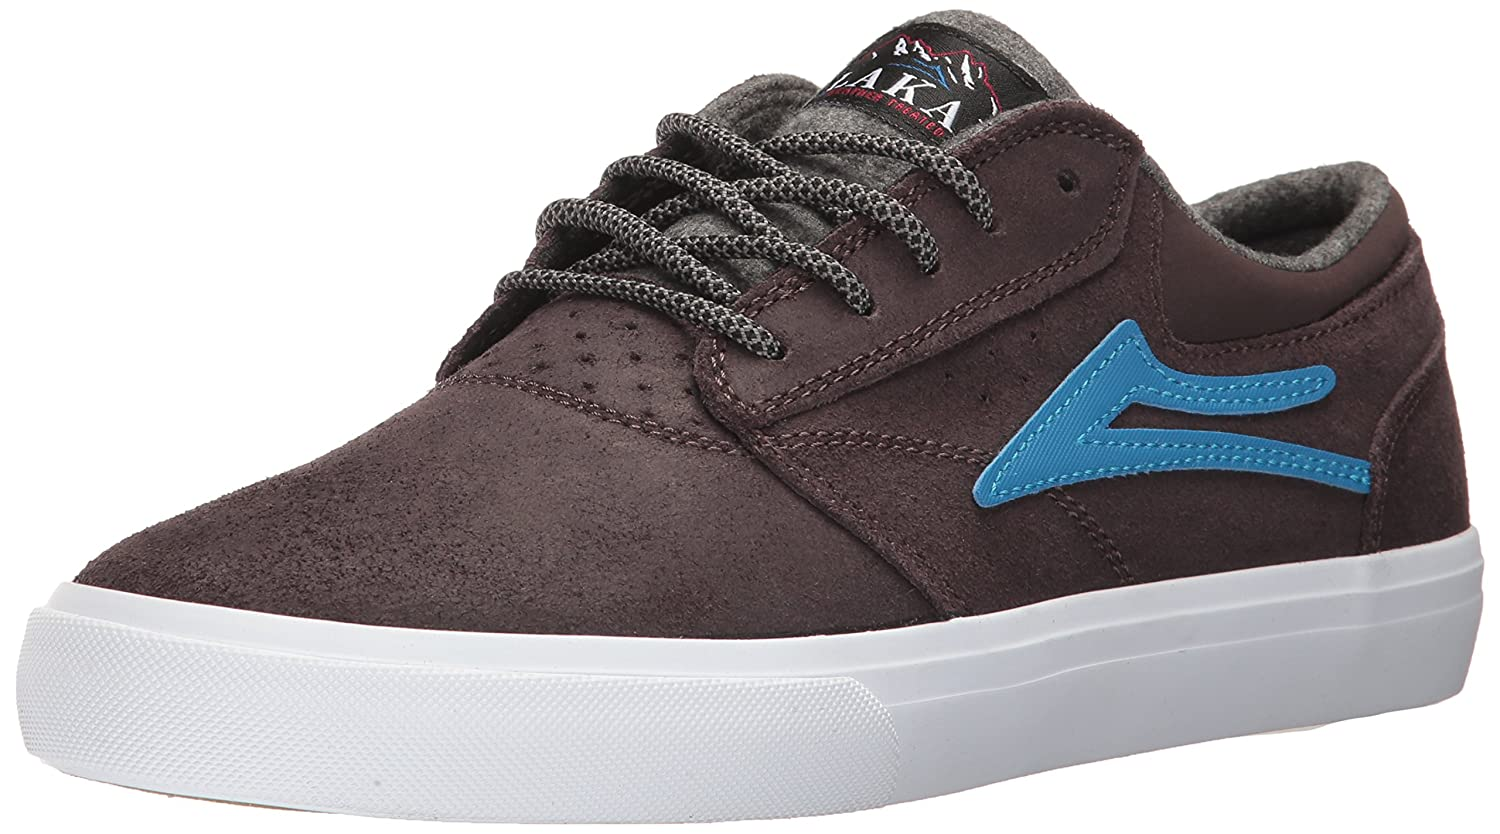 Lakai Griffin WT Skate Shoe 10 M US|Brown Oiled Suede